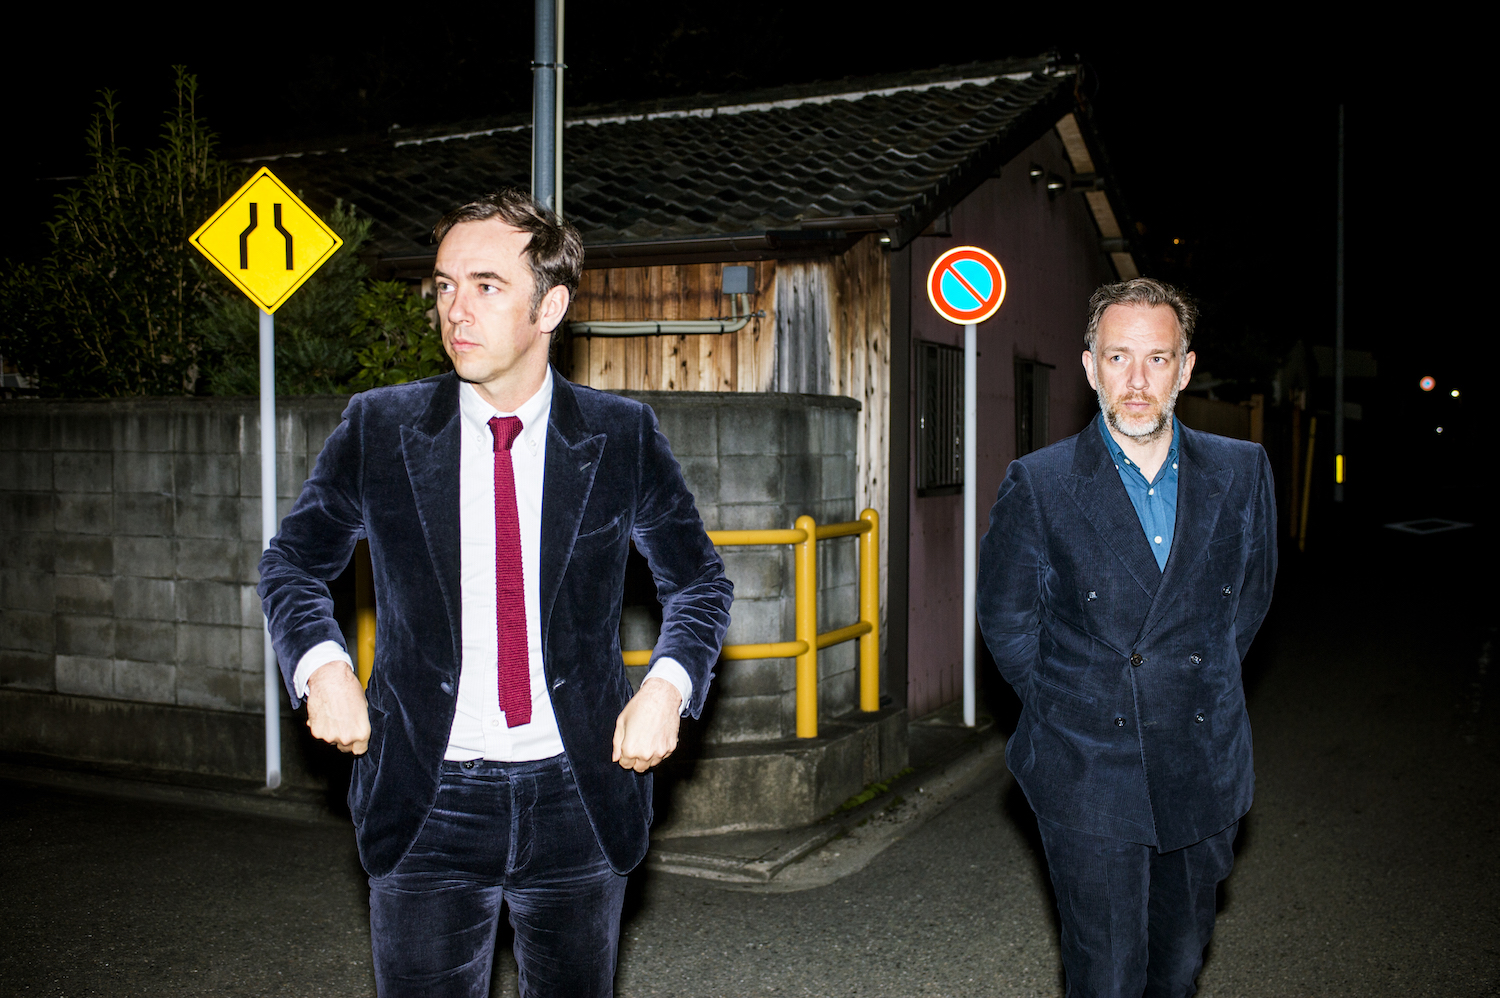 Soulwax from deewee